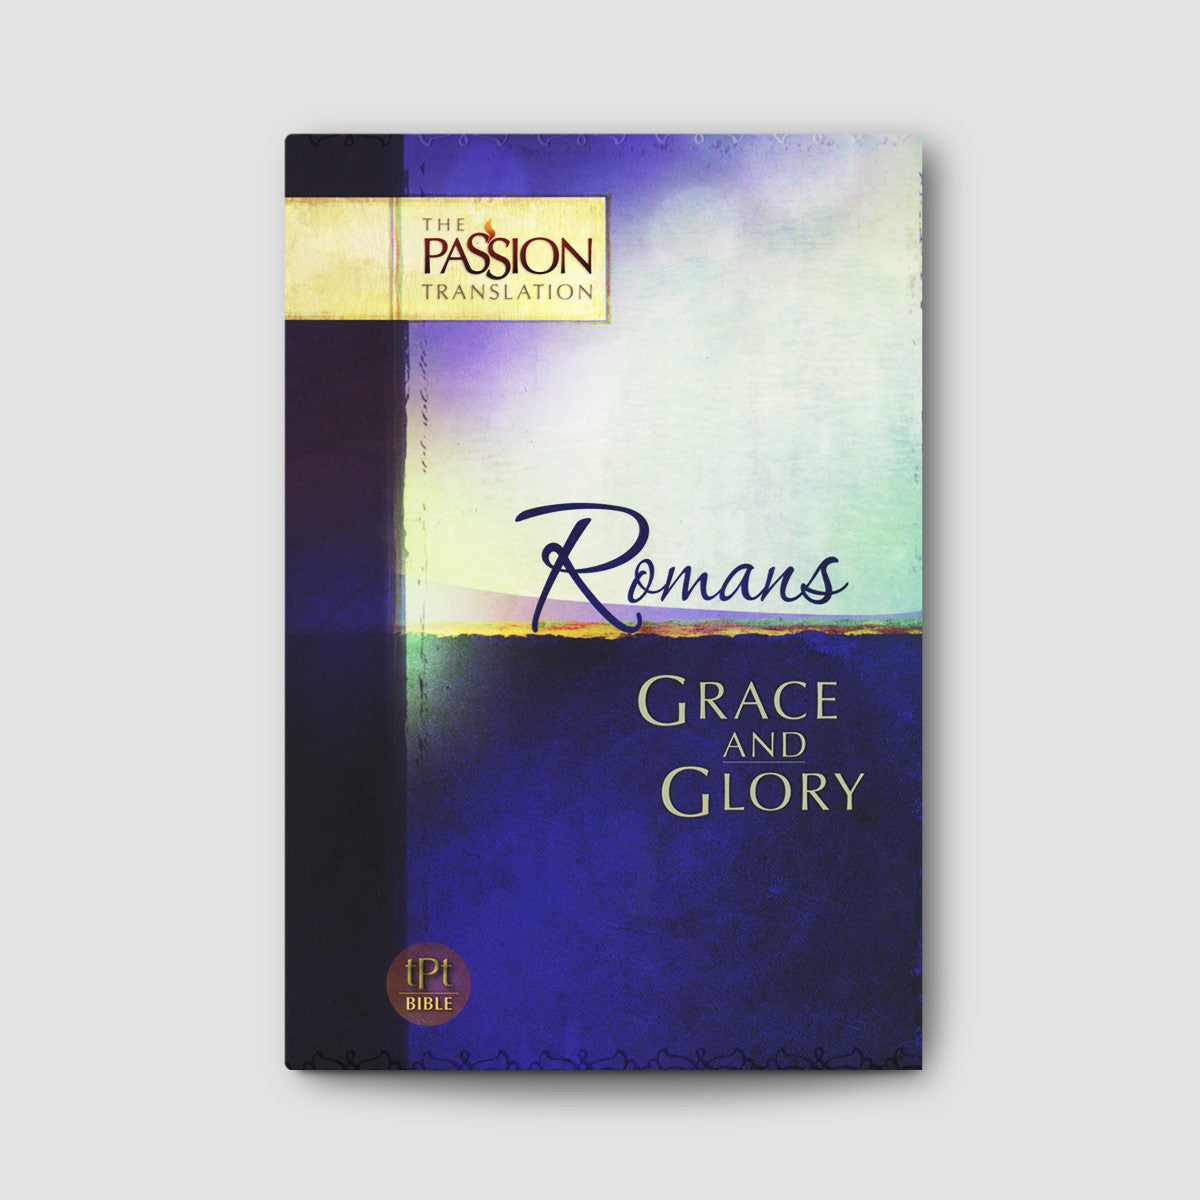 Romans: Grace and Glory (The Passion Translation)